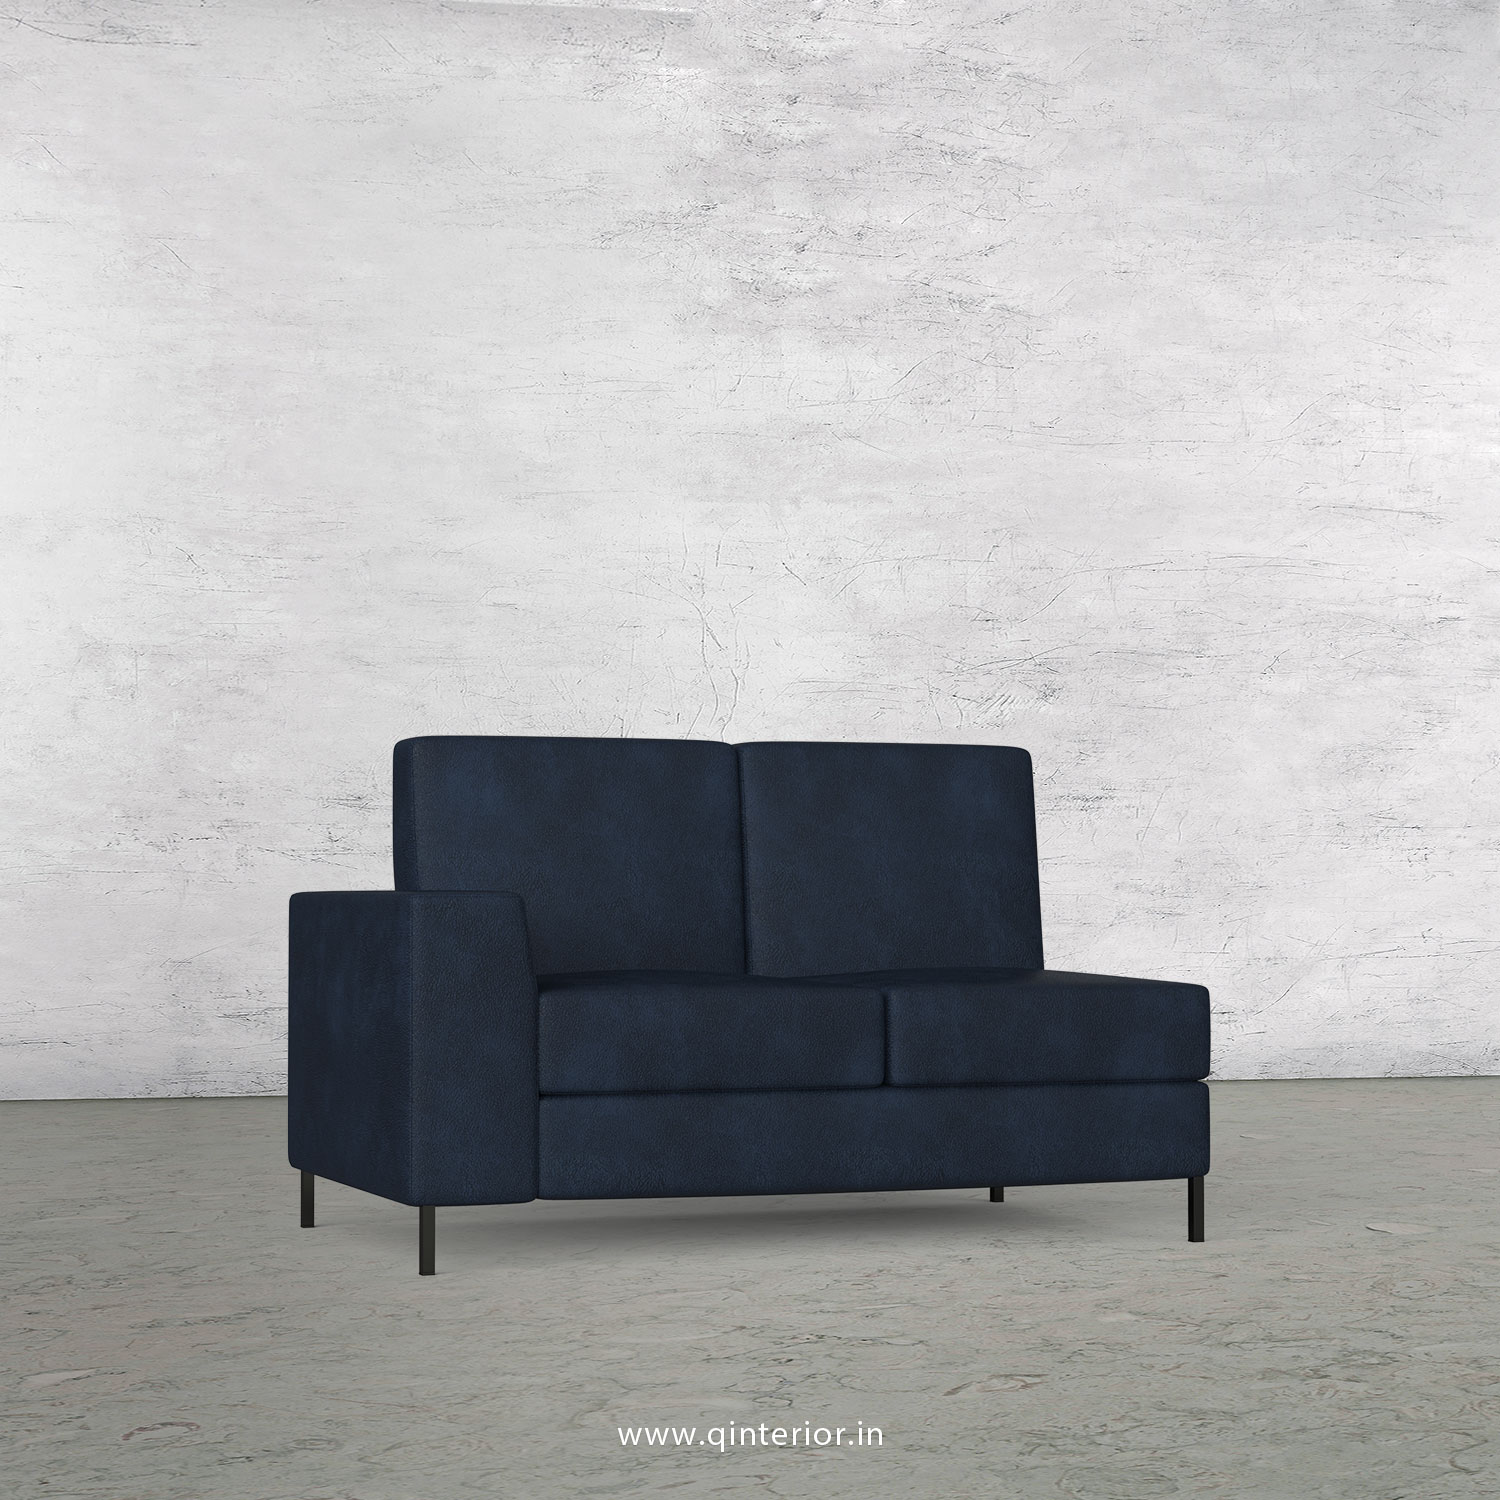 Viva 2 Seater Modular Sofa in Fab Leather Fabric - MSFA002 FL05